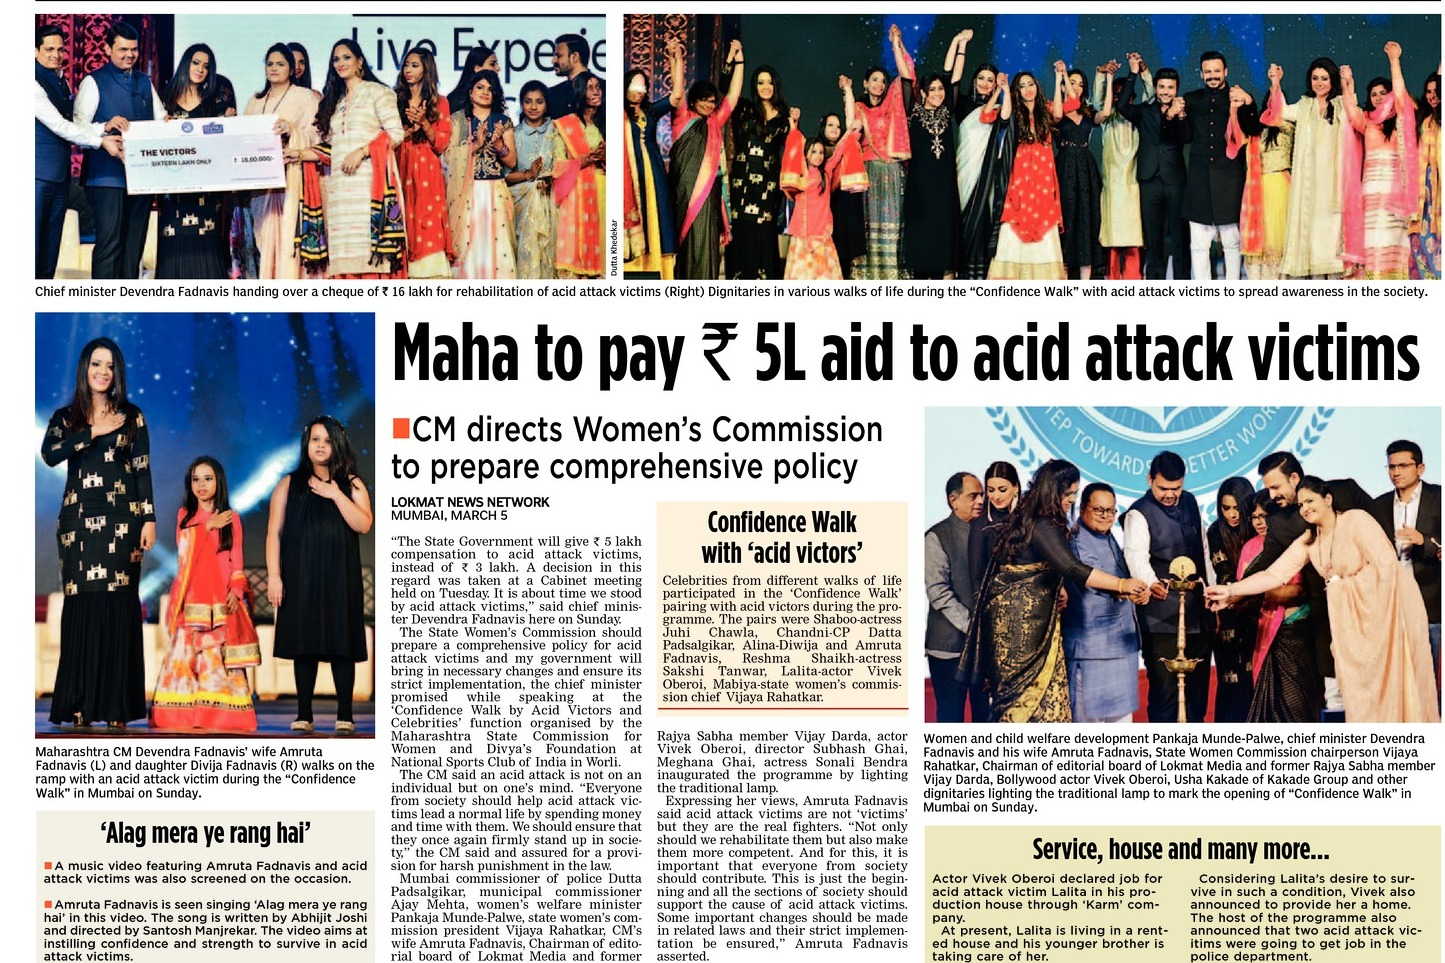 Maha to pay Rs 5L aid to acid attack victims